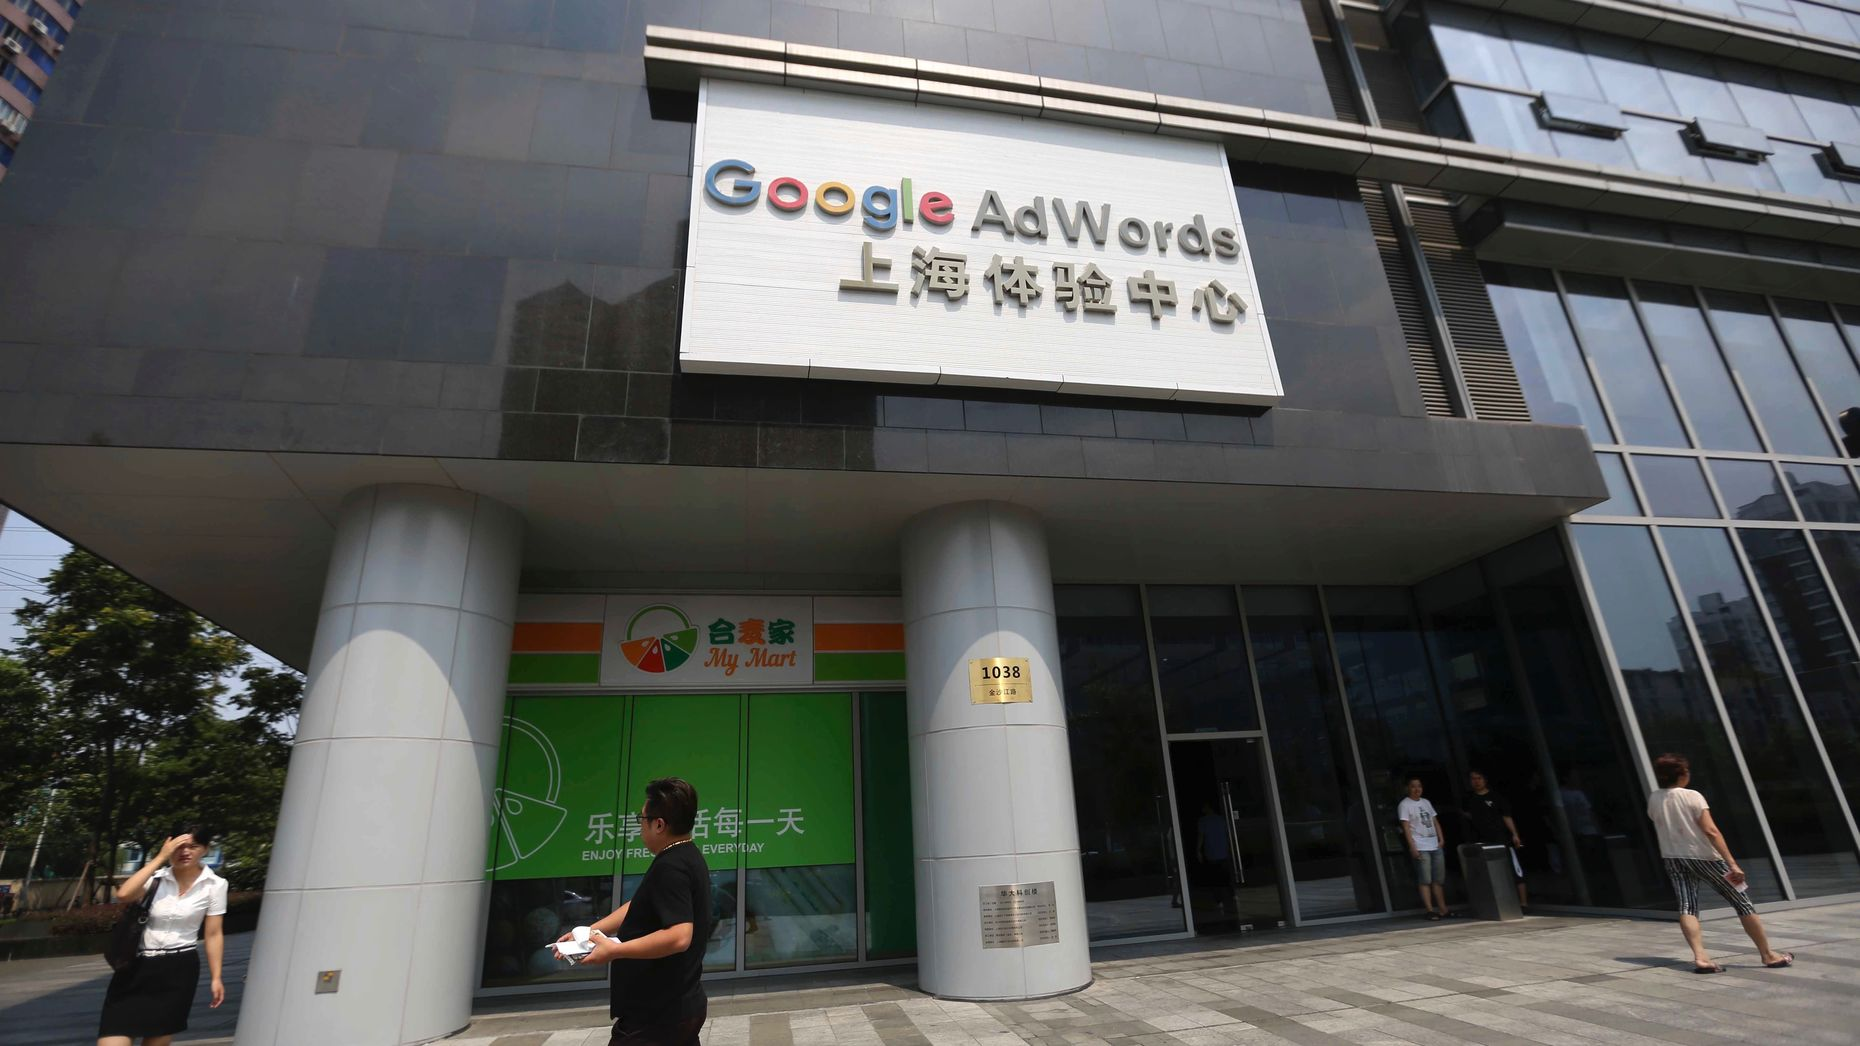 A Google Export Experience Center, known until recently as a Google AdWords Experience Center, in Shanghai in 2016. Photo by AP